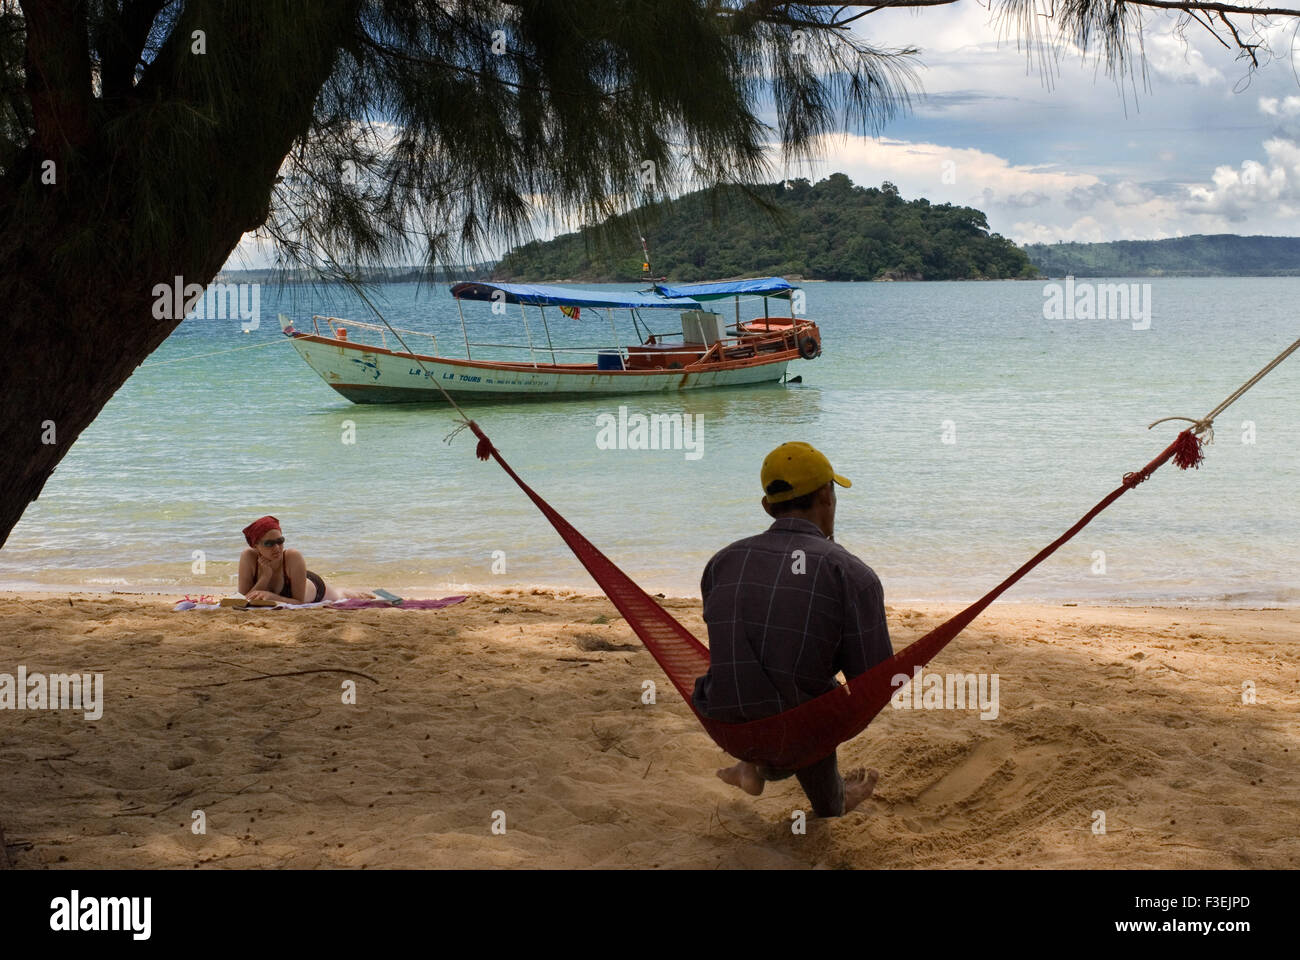 Lying in a hammock on the sea shore of the island of Koh Russei. Koh Russei (or Bamboo Island as it's commonly known) Stock Photo